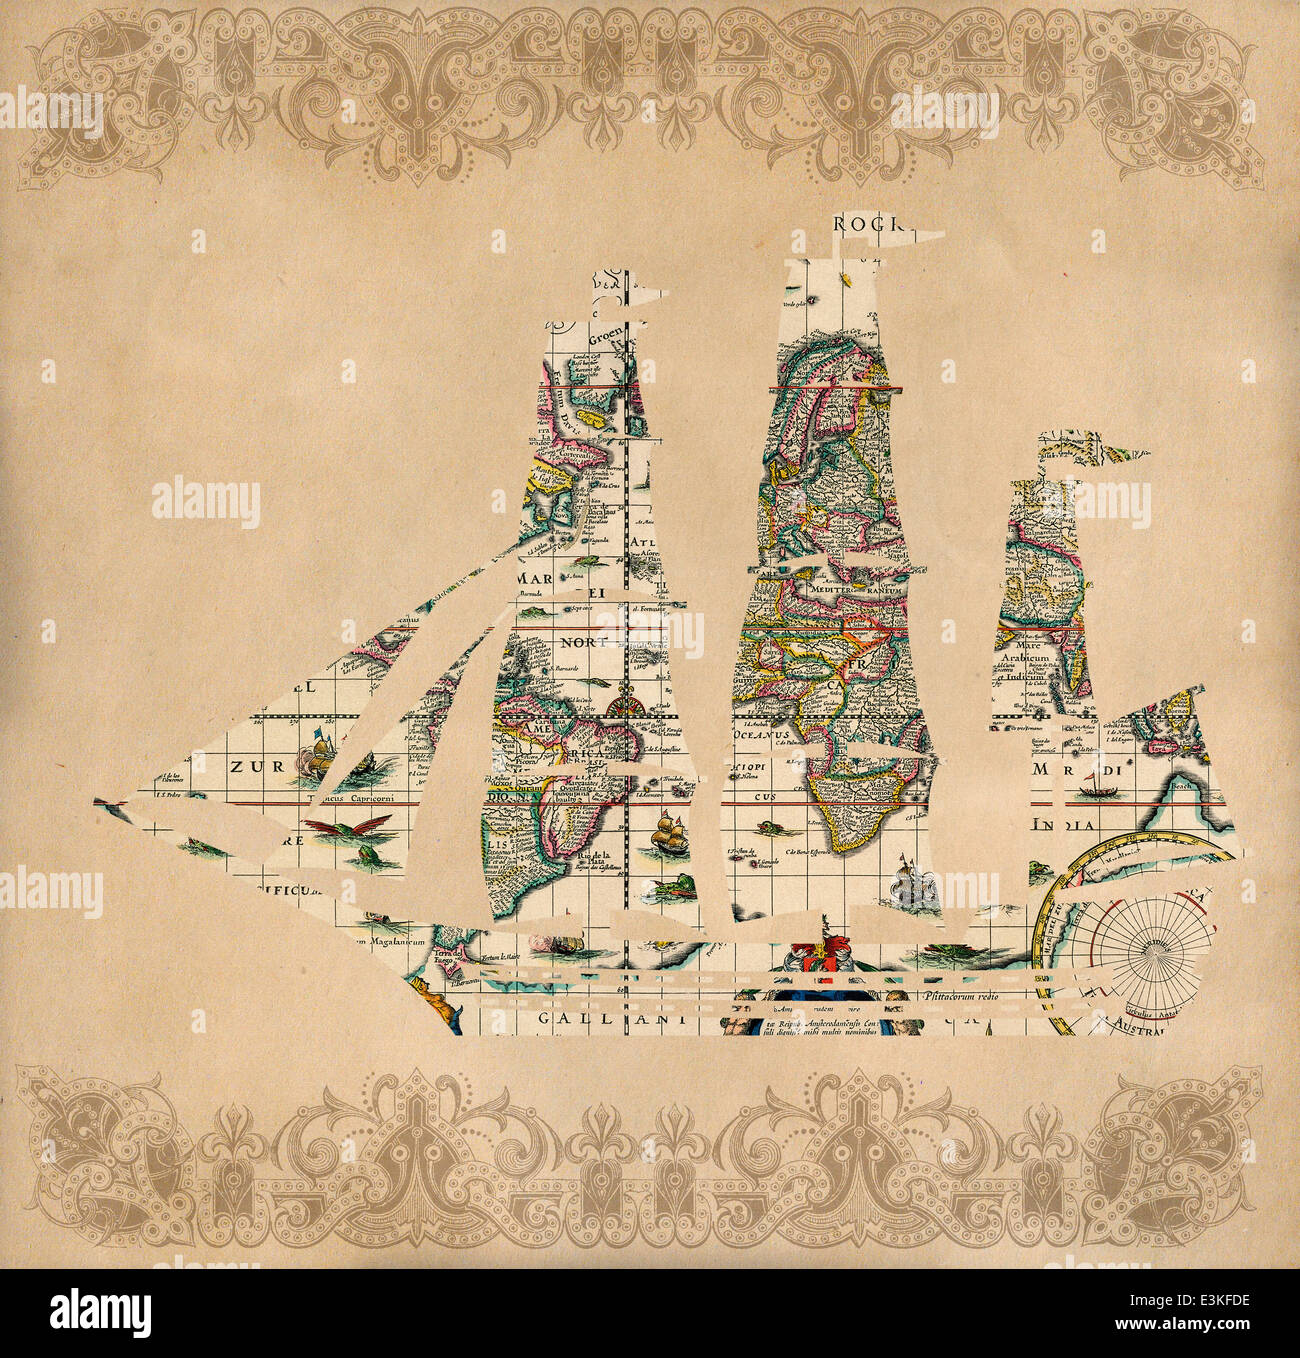 Sailing ship silhouette over antique map - retro postcard on vintage paper background Stock Photo